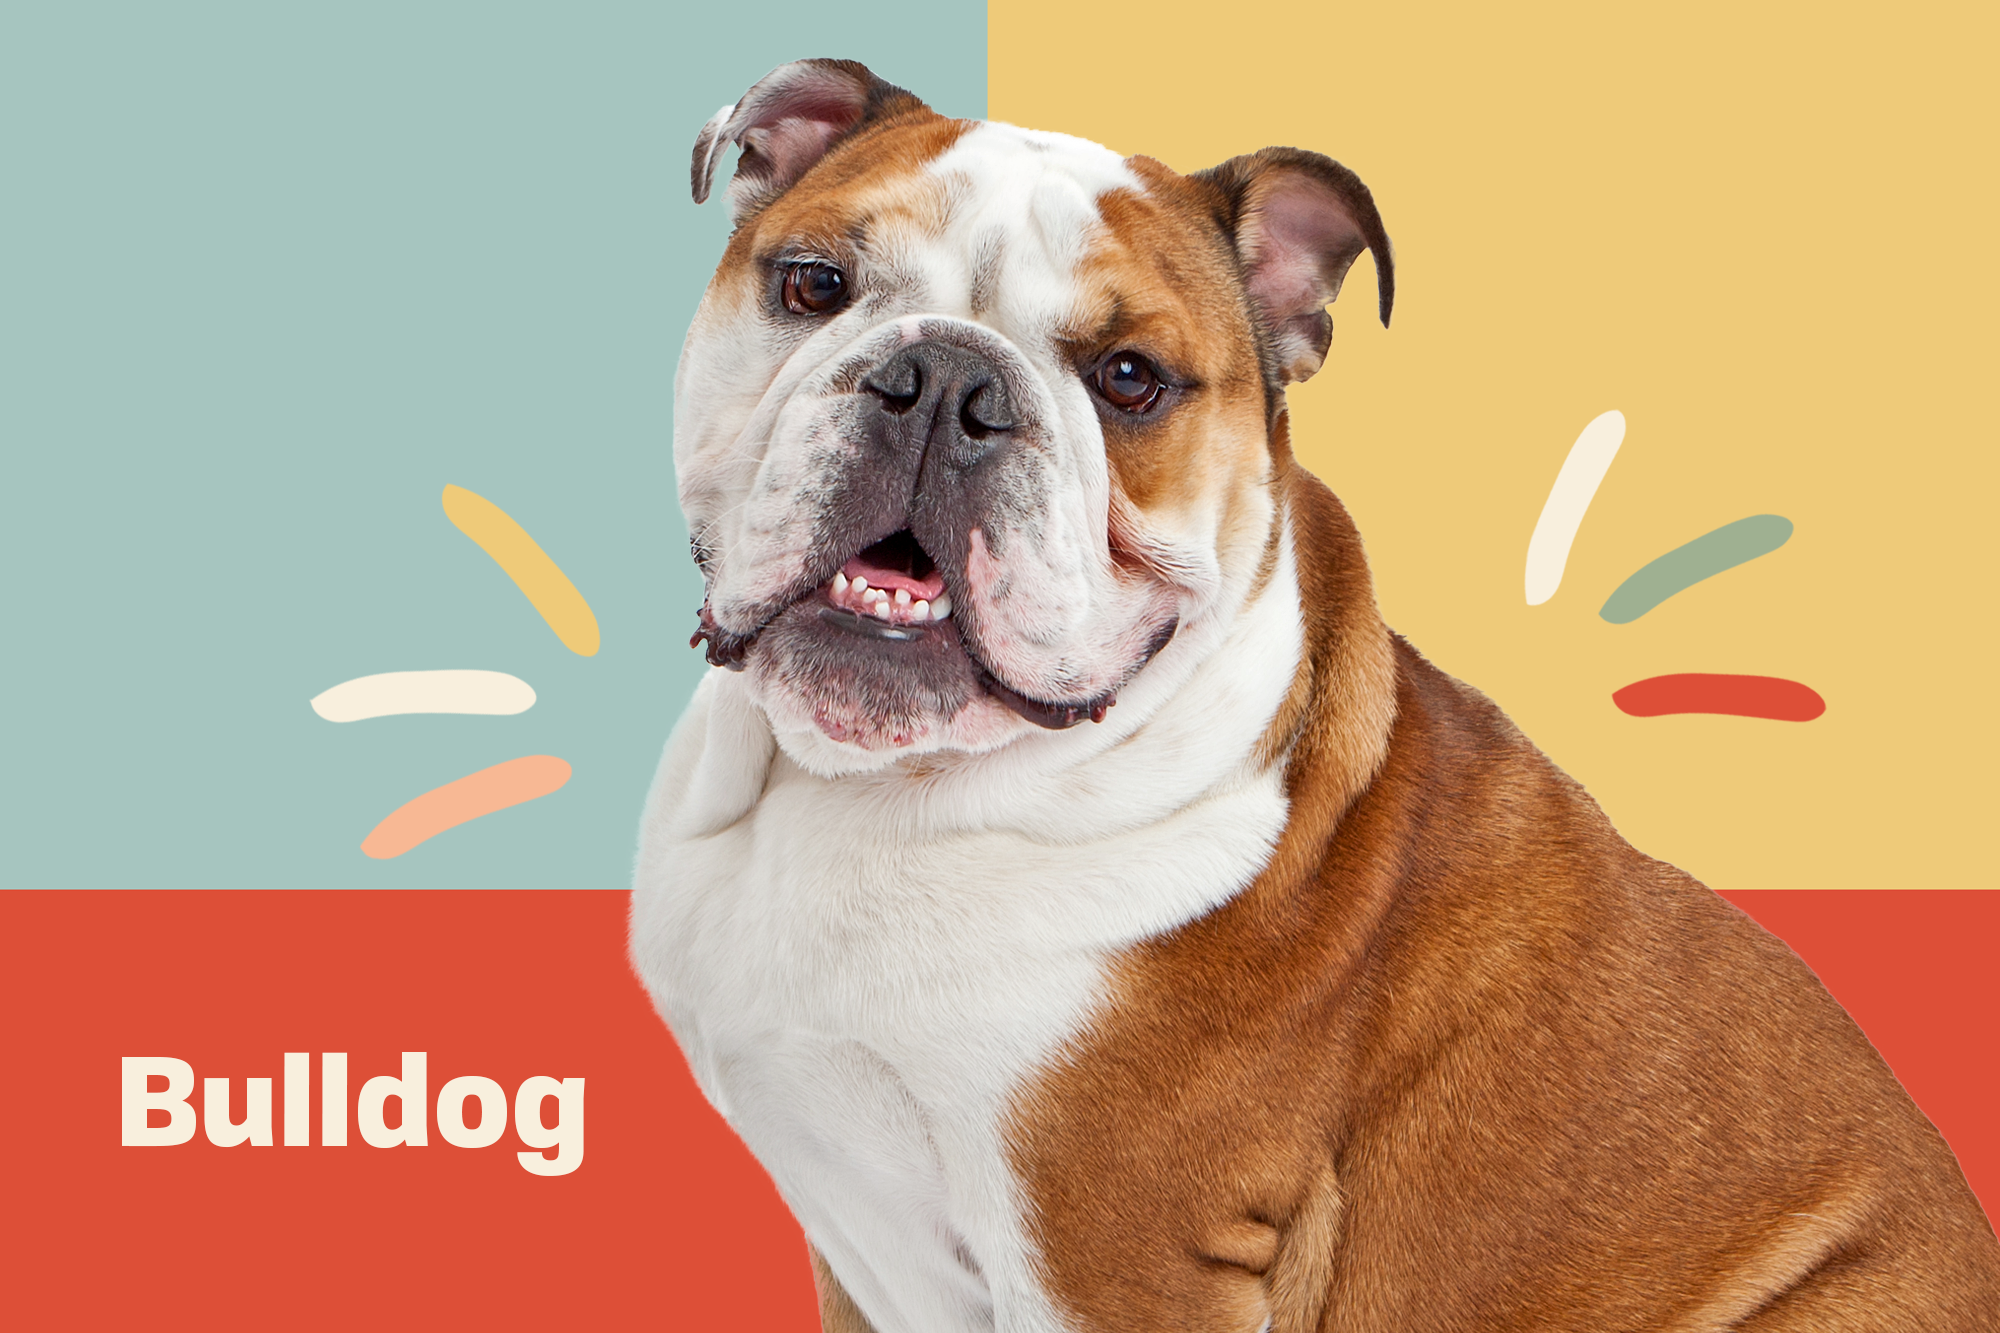 Bulldog Breed Photo